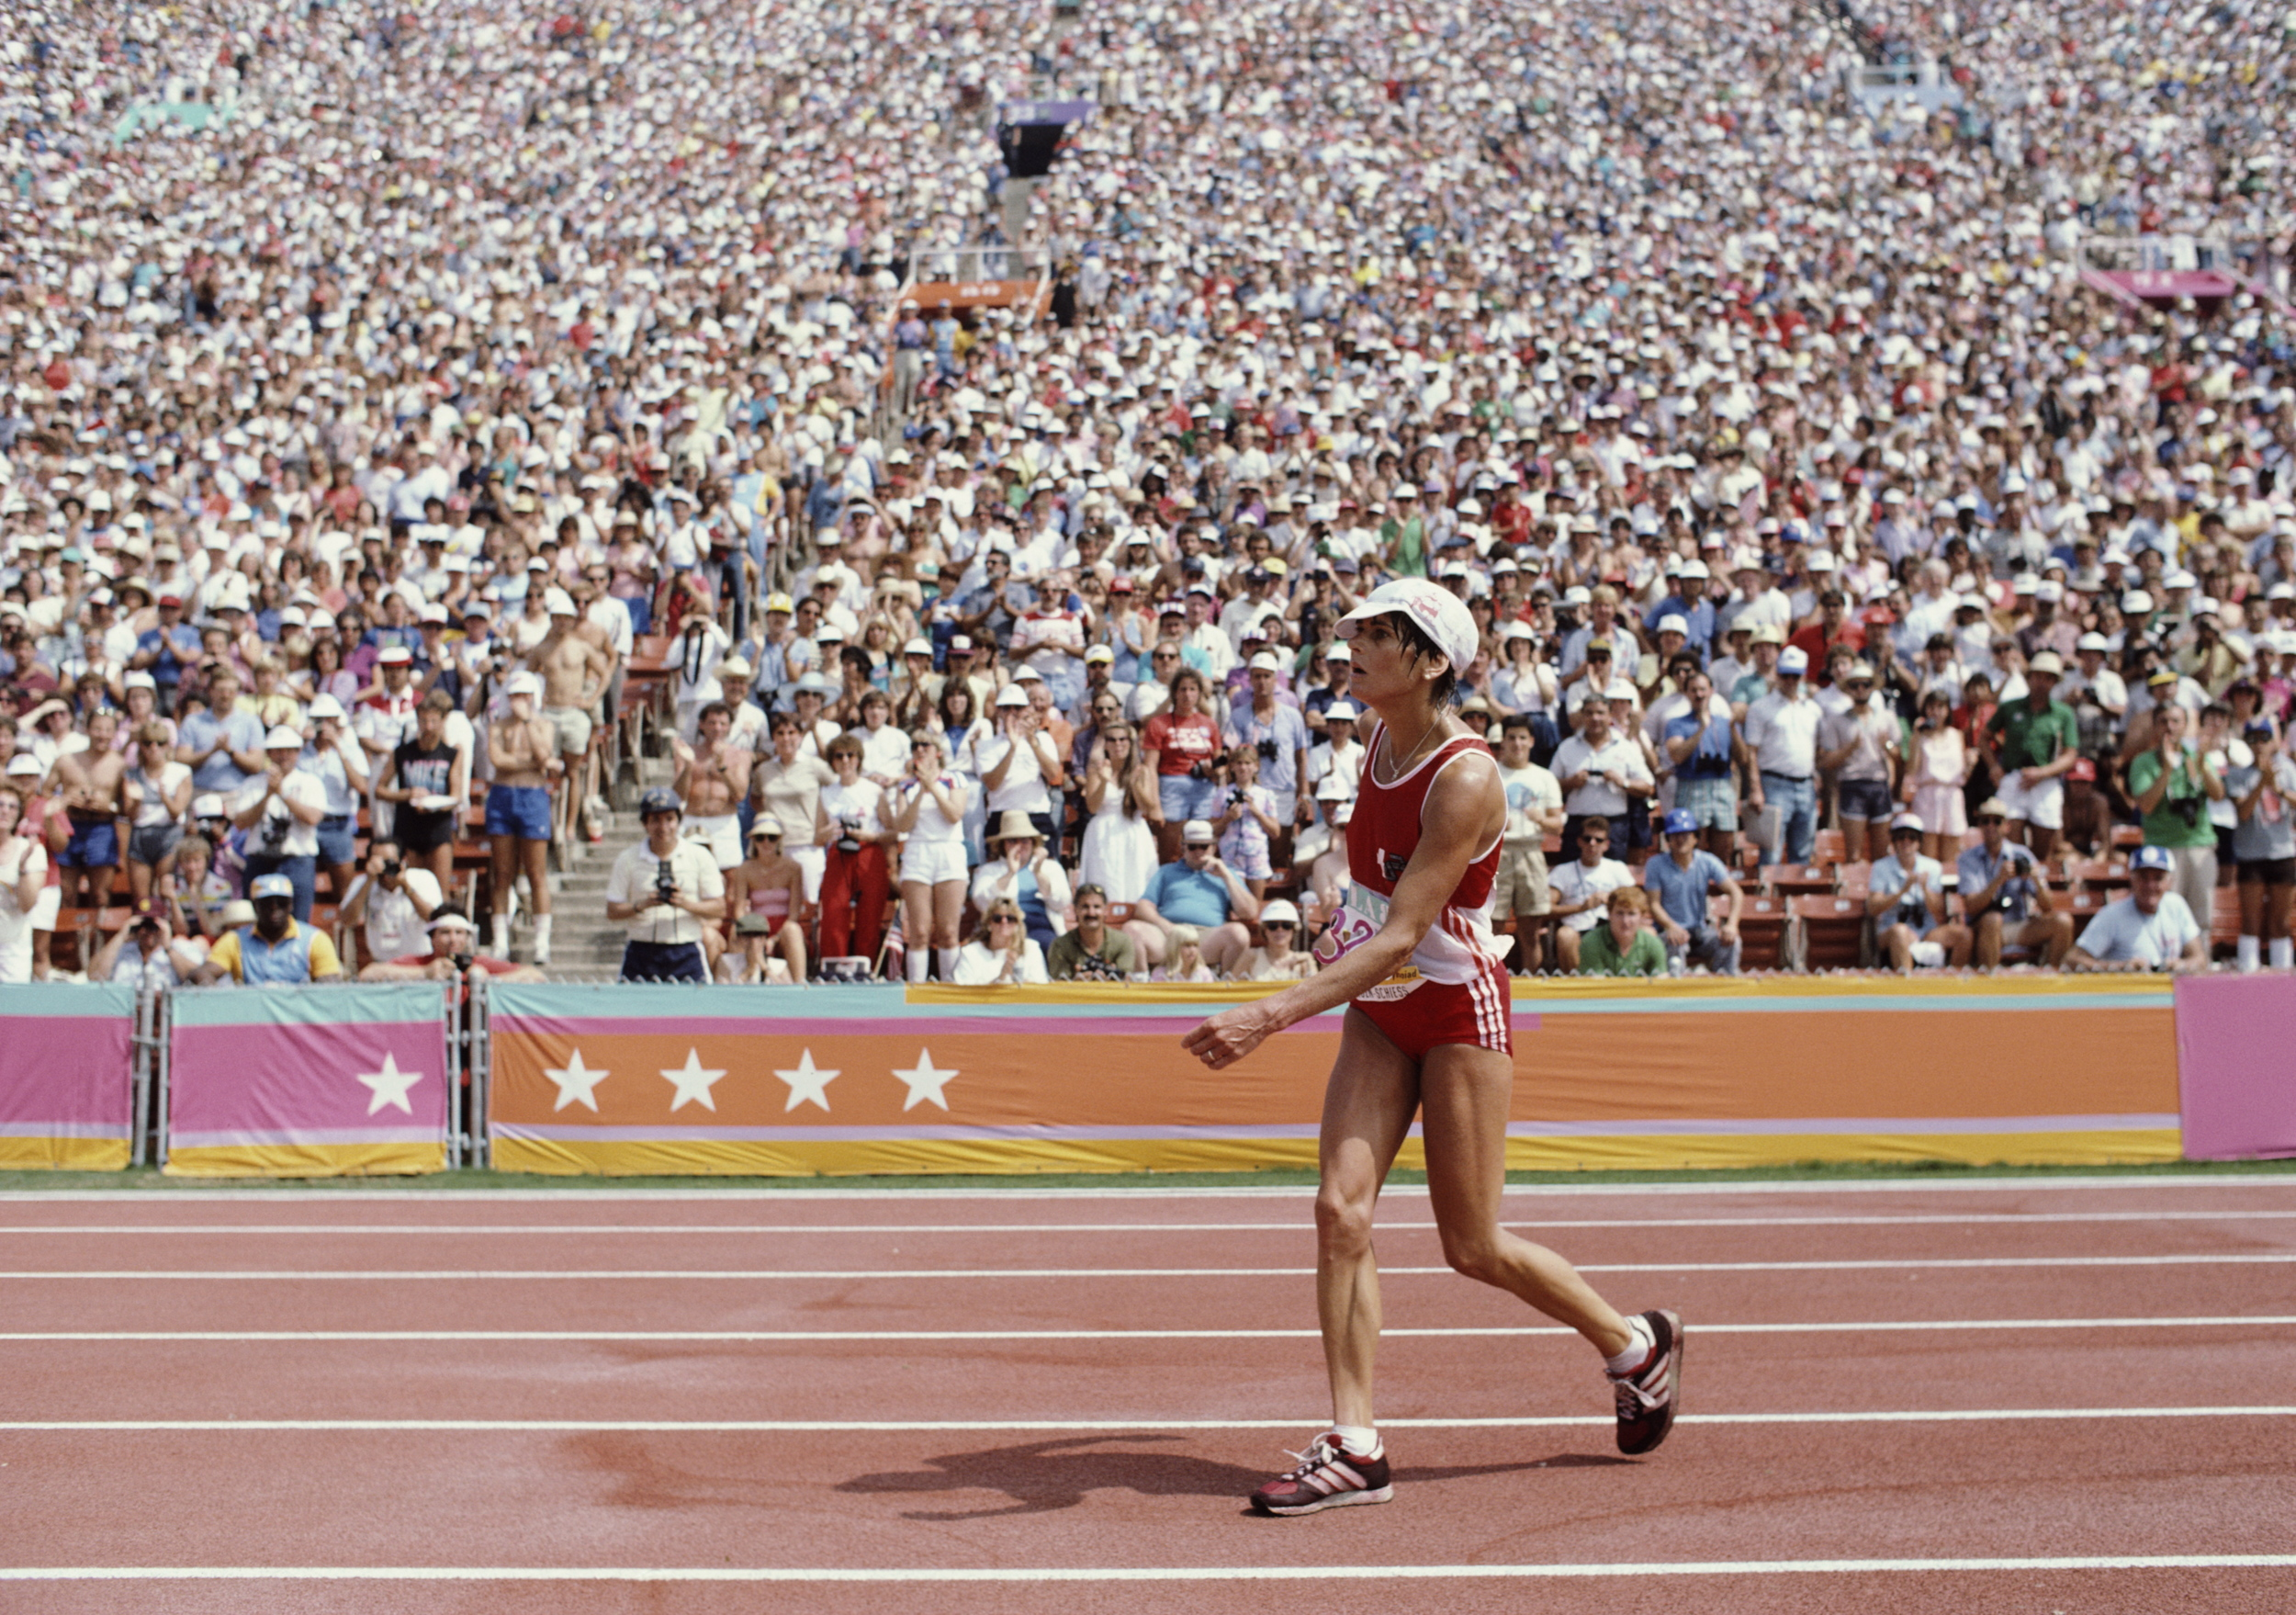 The crowd gasped in horror as she staggered onto the track, her torso twisted, her left arm limp, her right leg mostly seized. She waved away medical personnel who rushed to help her, knowing that, if they touched her, she would be disqualified. The L.A. Coliseum crowd applauded and cheered as she limped around the track in the race's final 400 meters, occasionally stopping and holding her head. While the effects of her heat exhaustion were plainly evident, trackside medics saw that she was perspiring, which meant that her body still had some disposable fluids, and let her continue her march to the finish line. At the completion of this final lap—which took Andersen-Schiess five minutes and 44 seconds—she fell across the finish line.